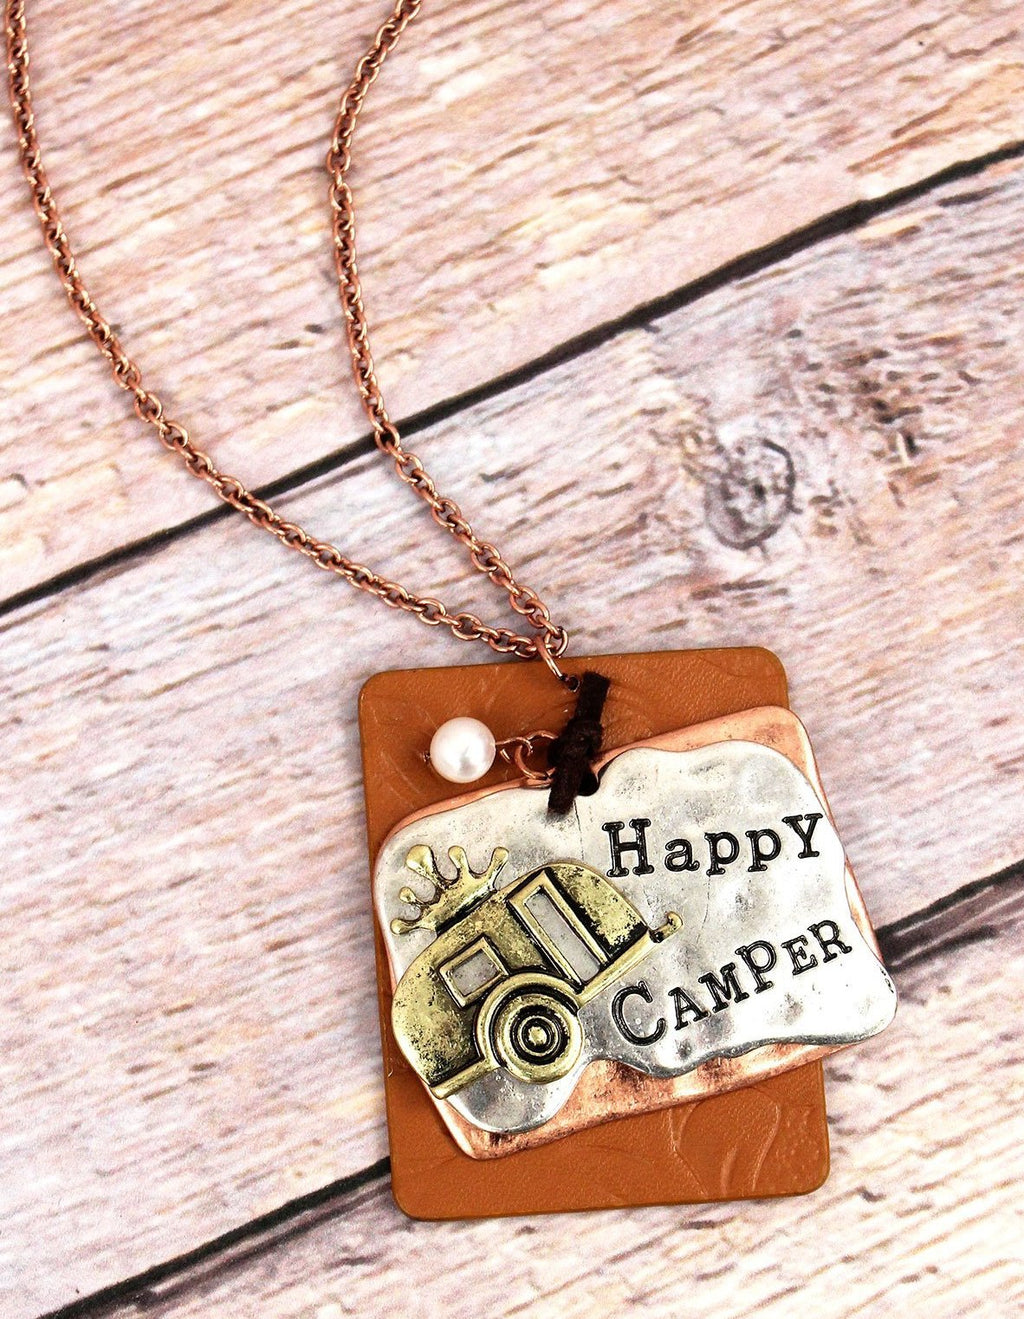 Happy Camper Faux Leather Necklace